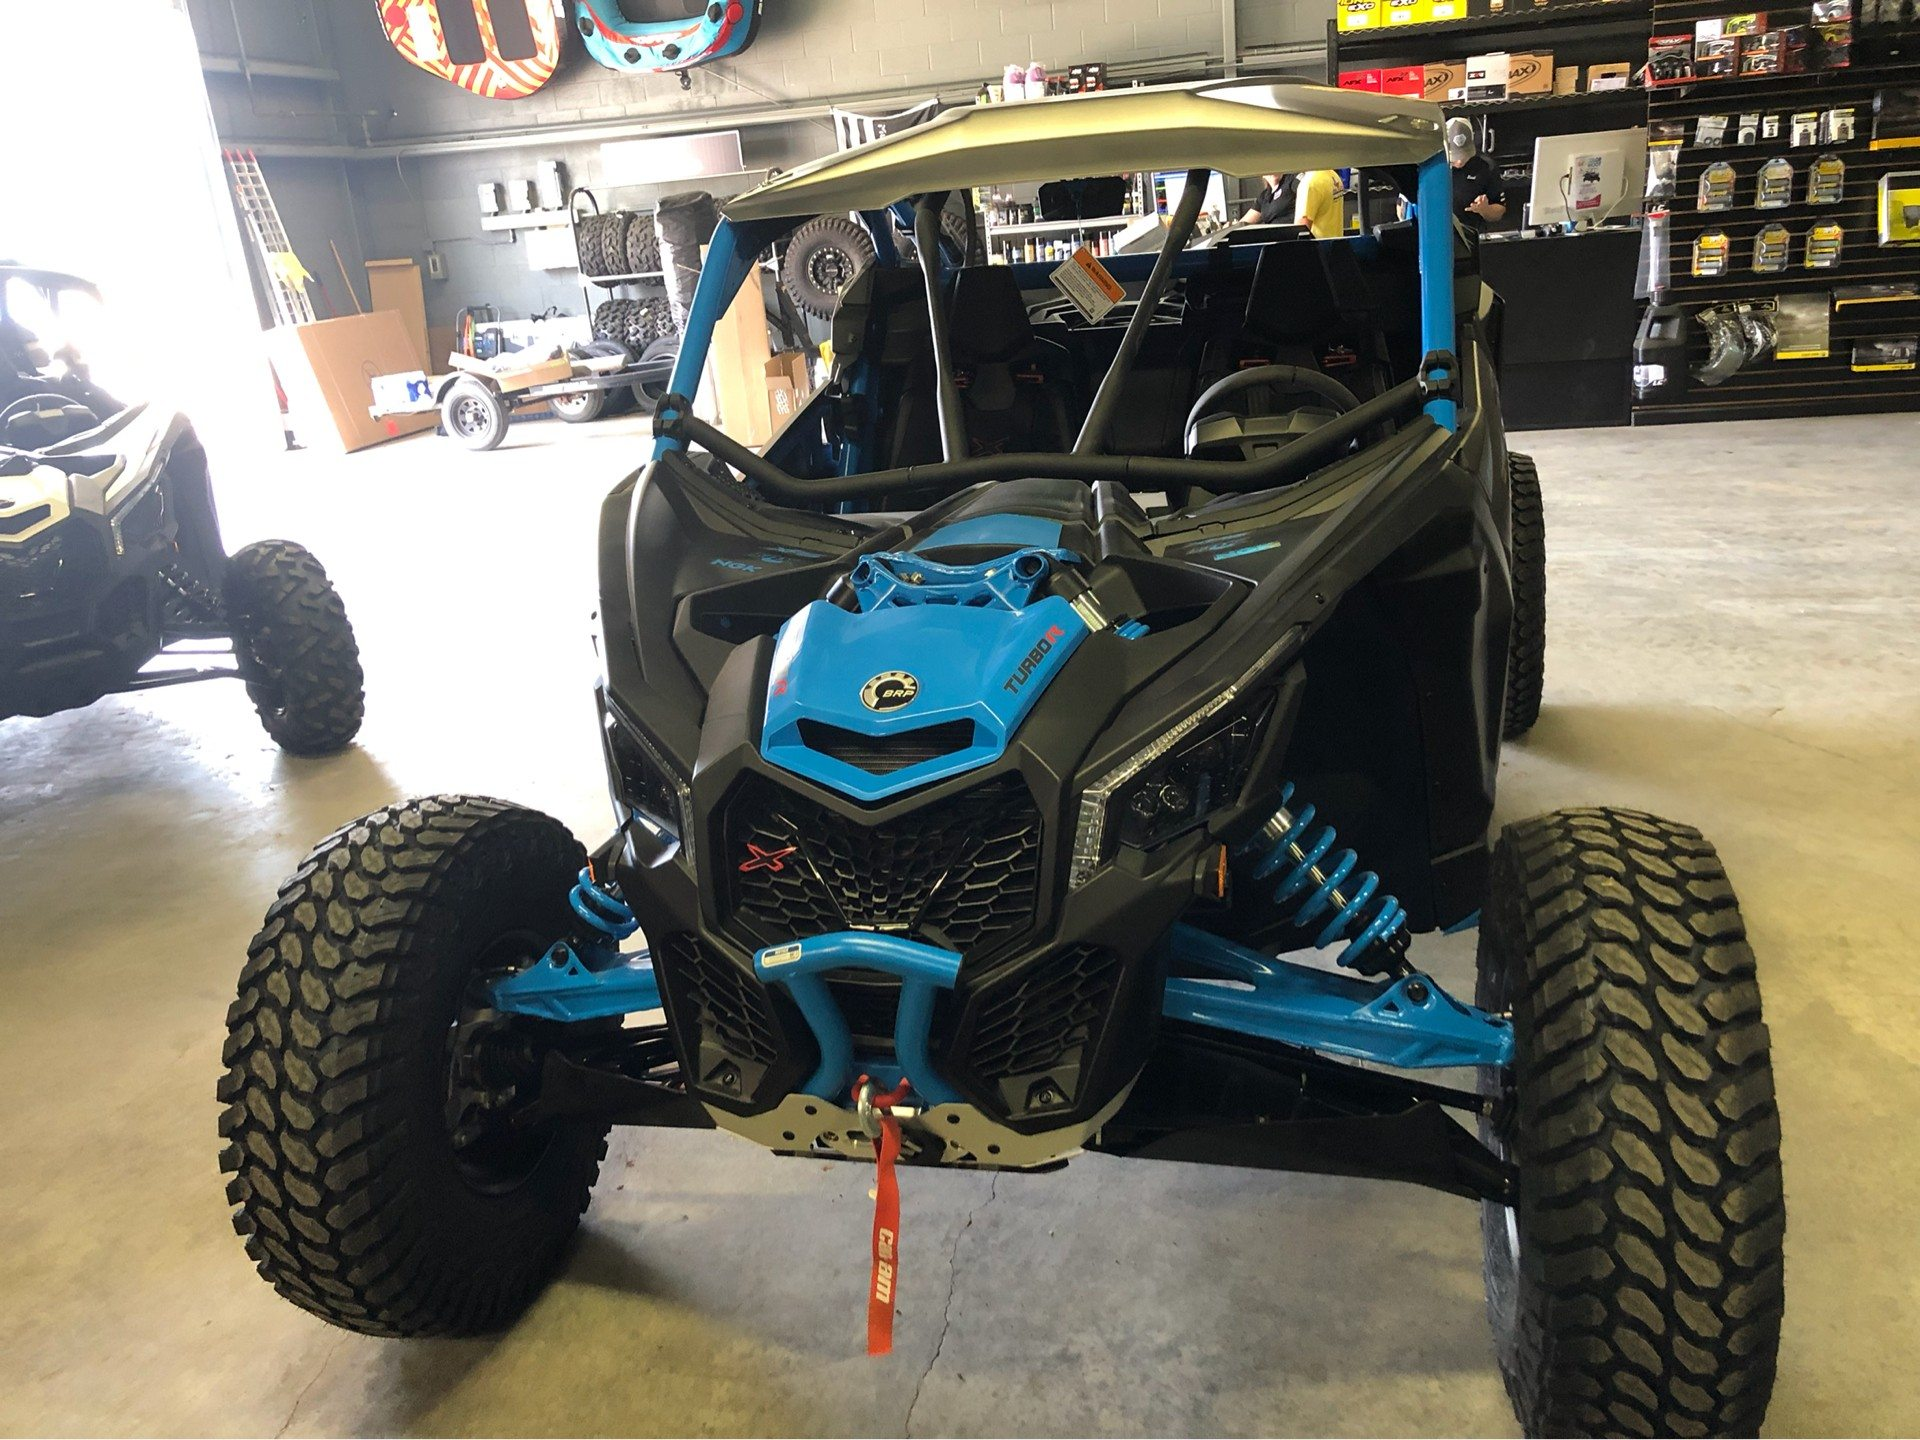 2019 Can-Am Maverick X3 X rc Turbo R in Amarillo, Texas - Photo 3